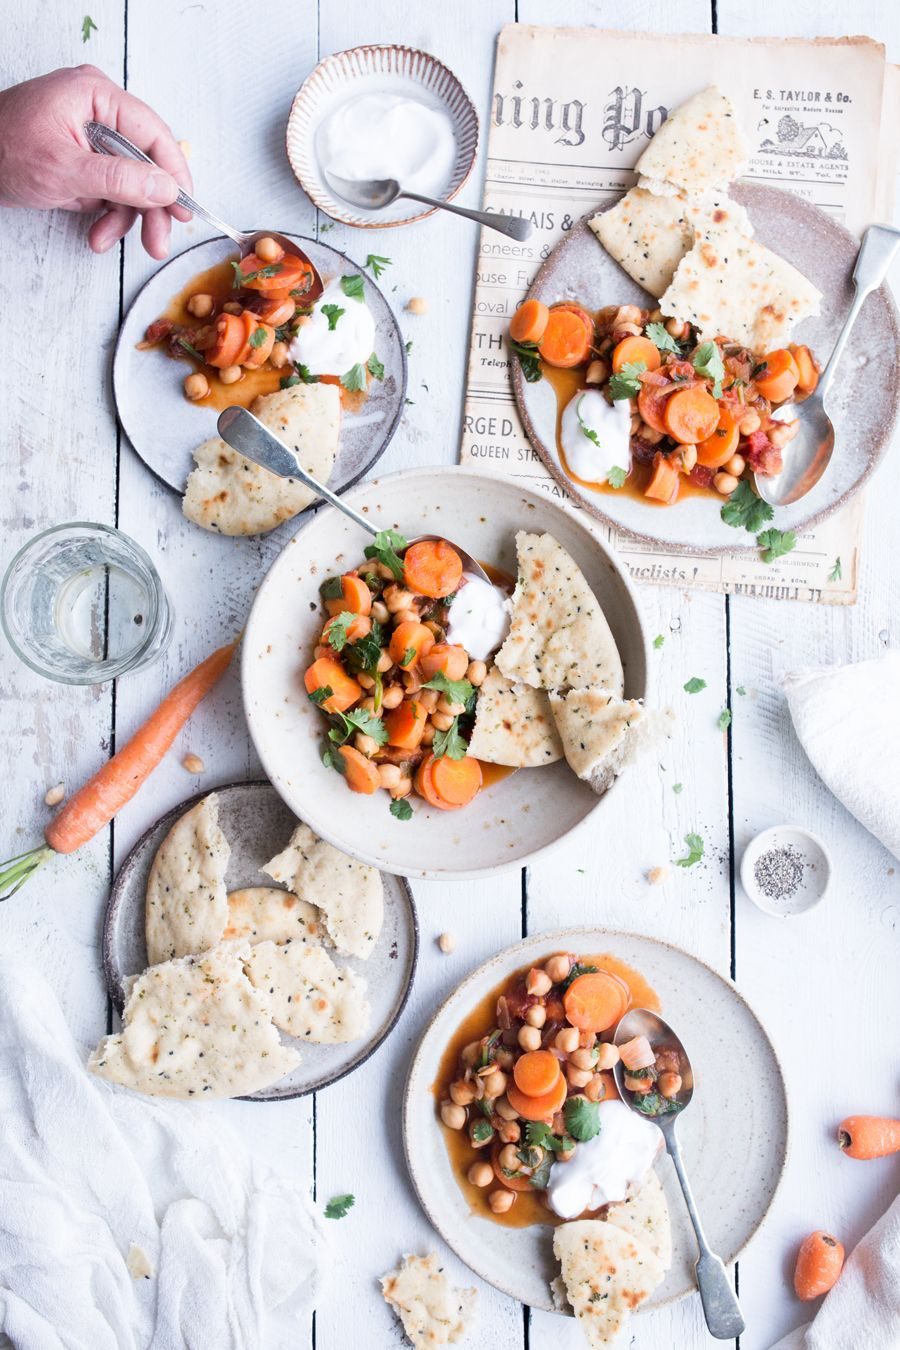 Vegan moroccan chickpea stew a cookbook giveaway v nf gf grf dinners forumfinder Gallery